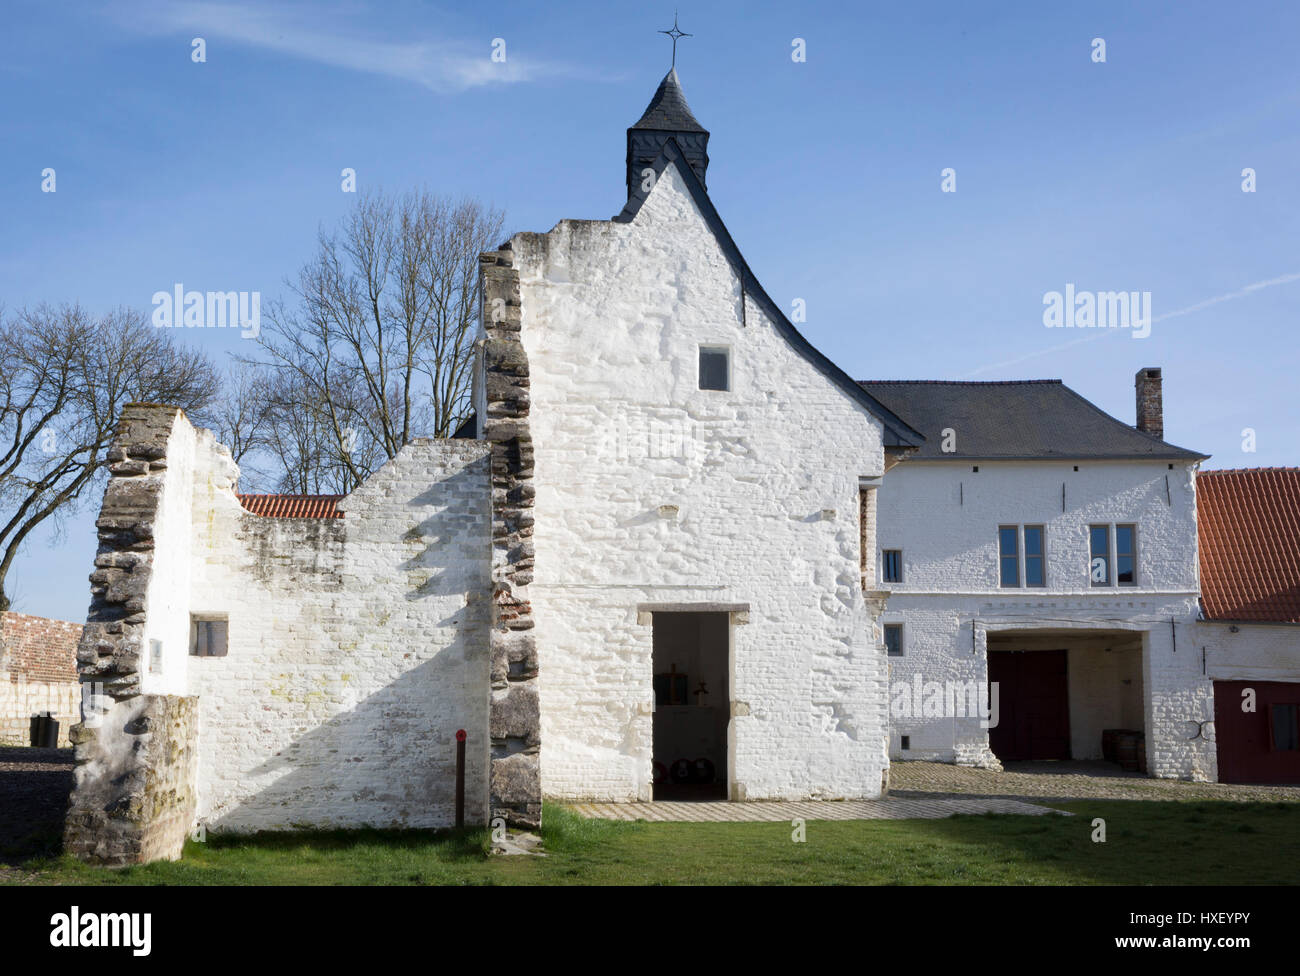 Exterior of the Chapel at the strategically-important Hougoumont Farm during the Battle of Waterloo, on 25th March - Stock Image